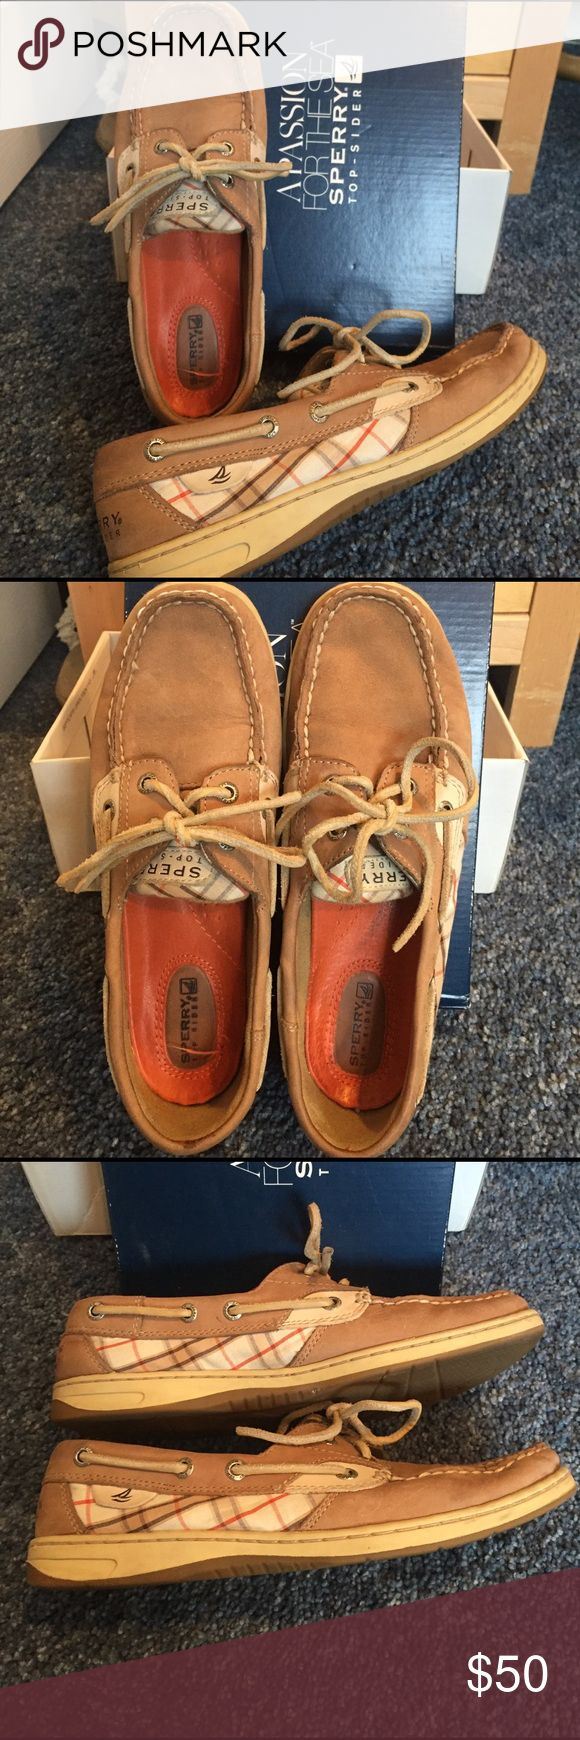 🇺🇸Memorial Day Sale Sperry Top-Sider boat shoes These Sperry boat shoes are super comfy and are in great condition. The color combination is so stylish and will look great on. There are some signs of wear, with a few marks (not very noticeable unless you zoom in) Sperry Shoes Flats & Loafers